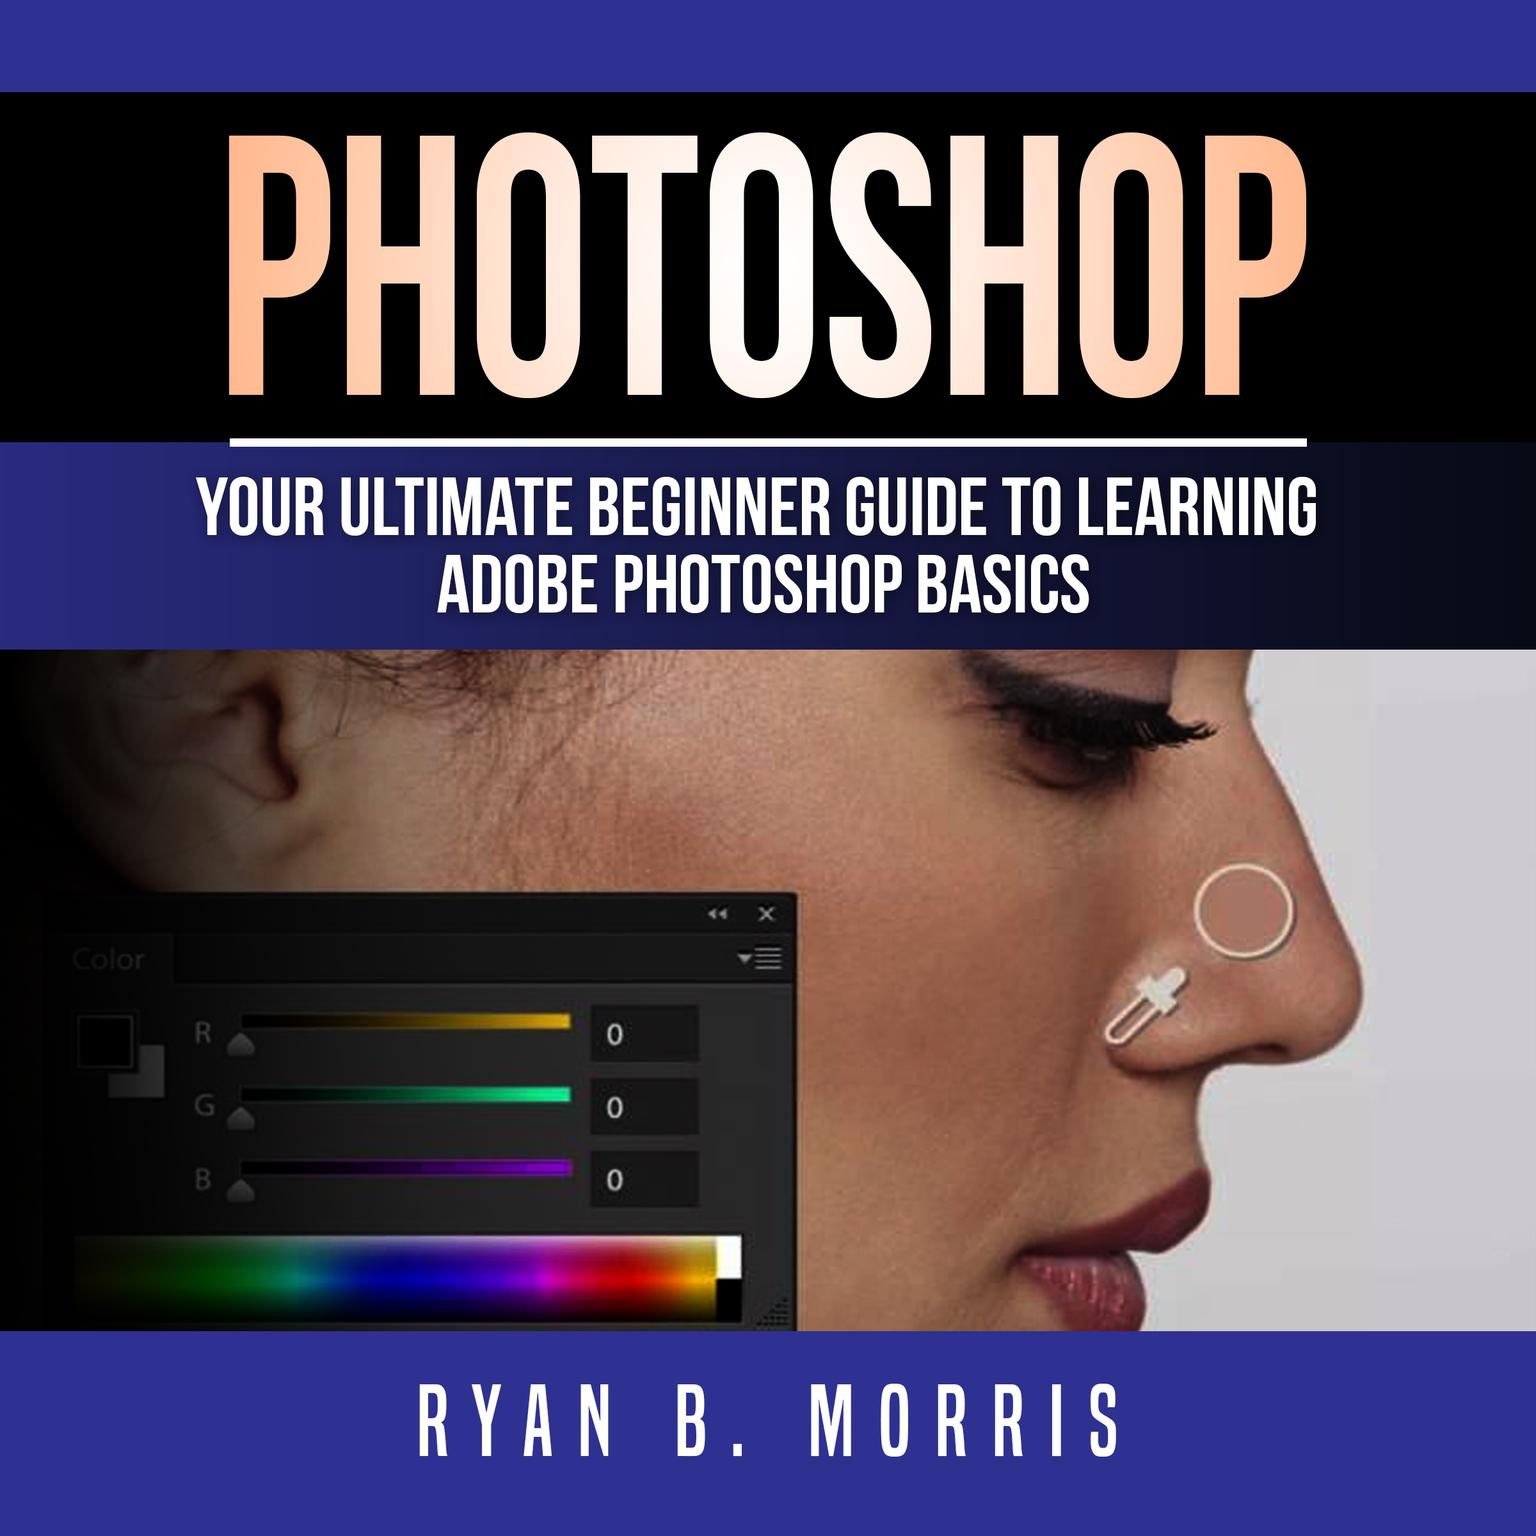 Learning Photoshop Photoshop Your Ultimate Beginner Guide To Learning Adobe Photoshop Basics Audiobook